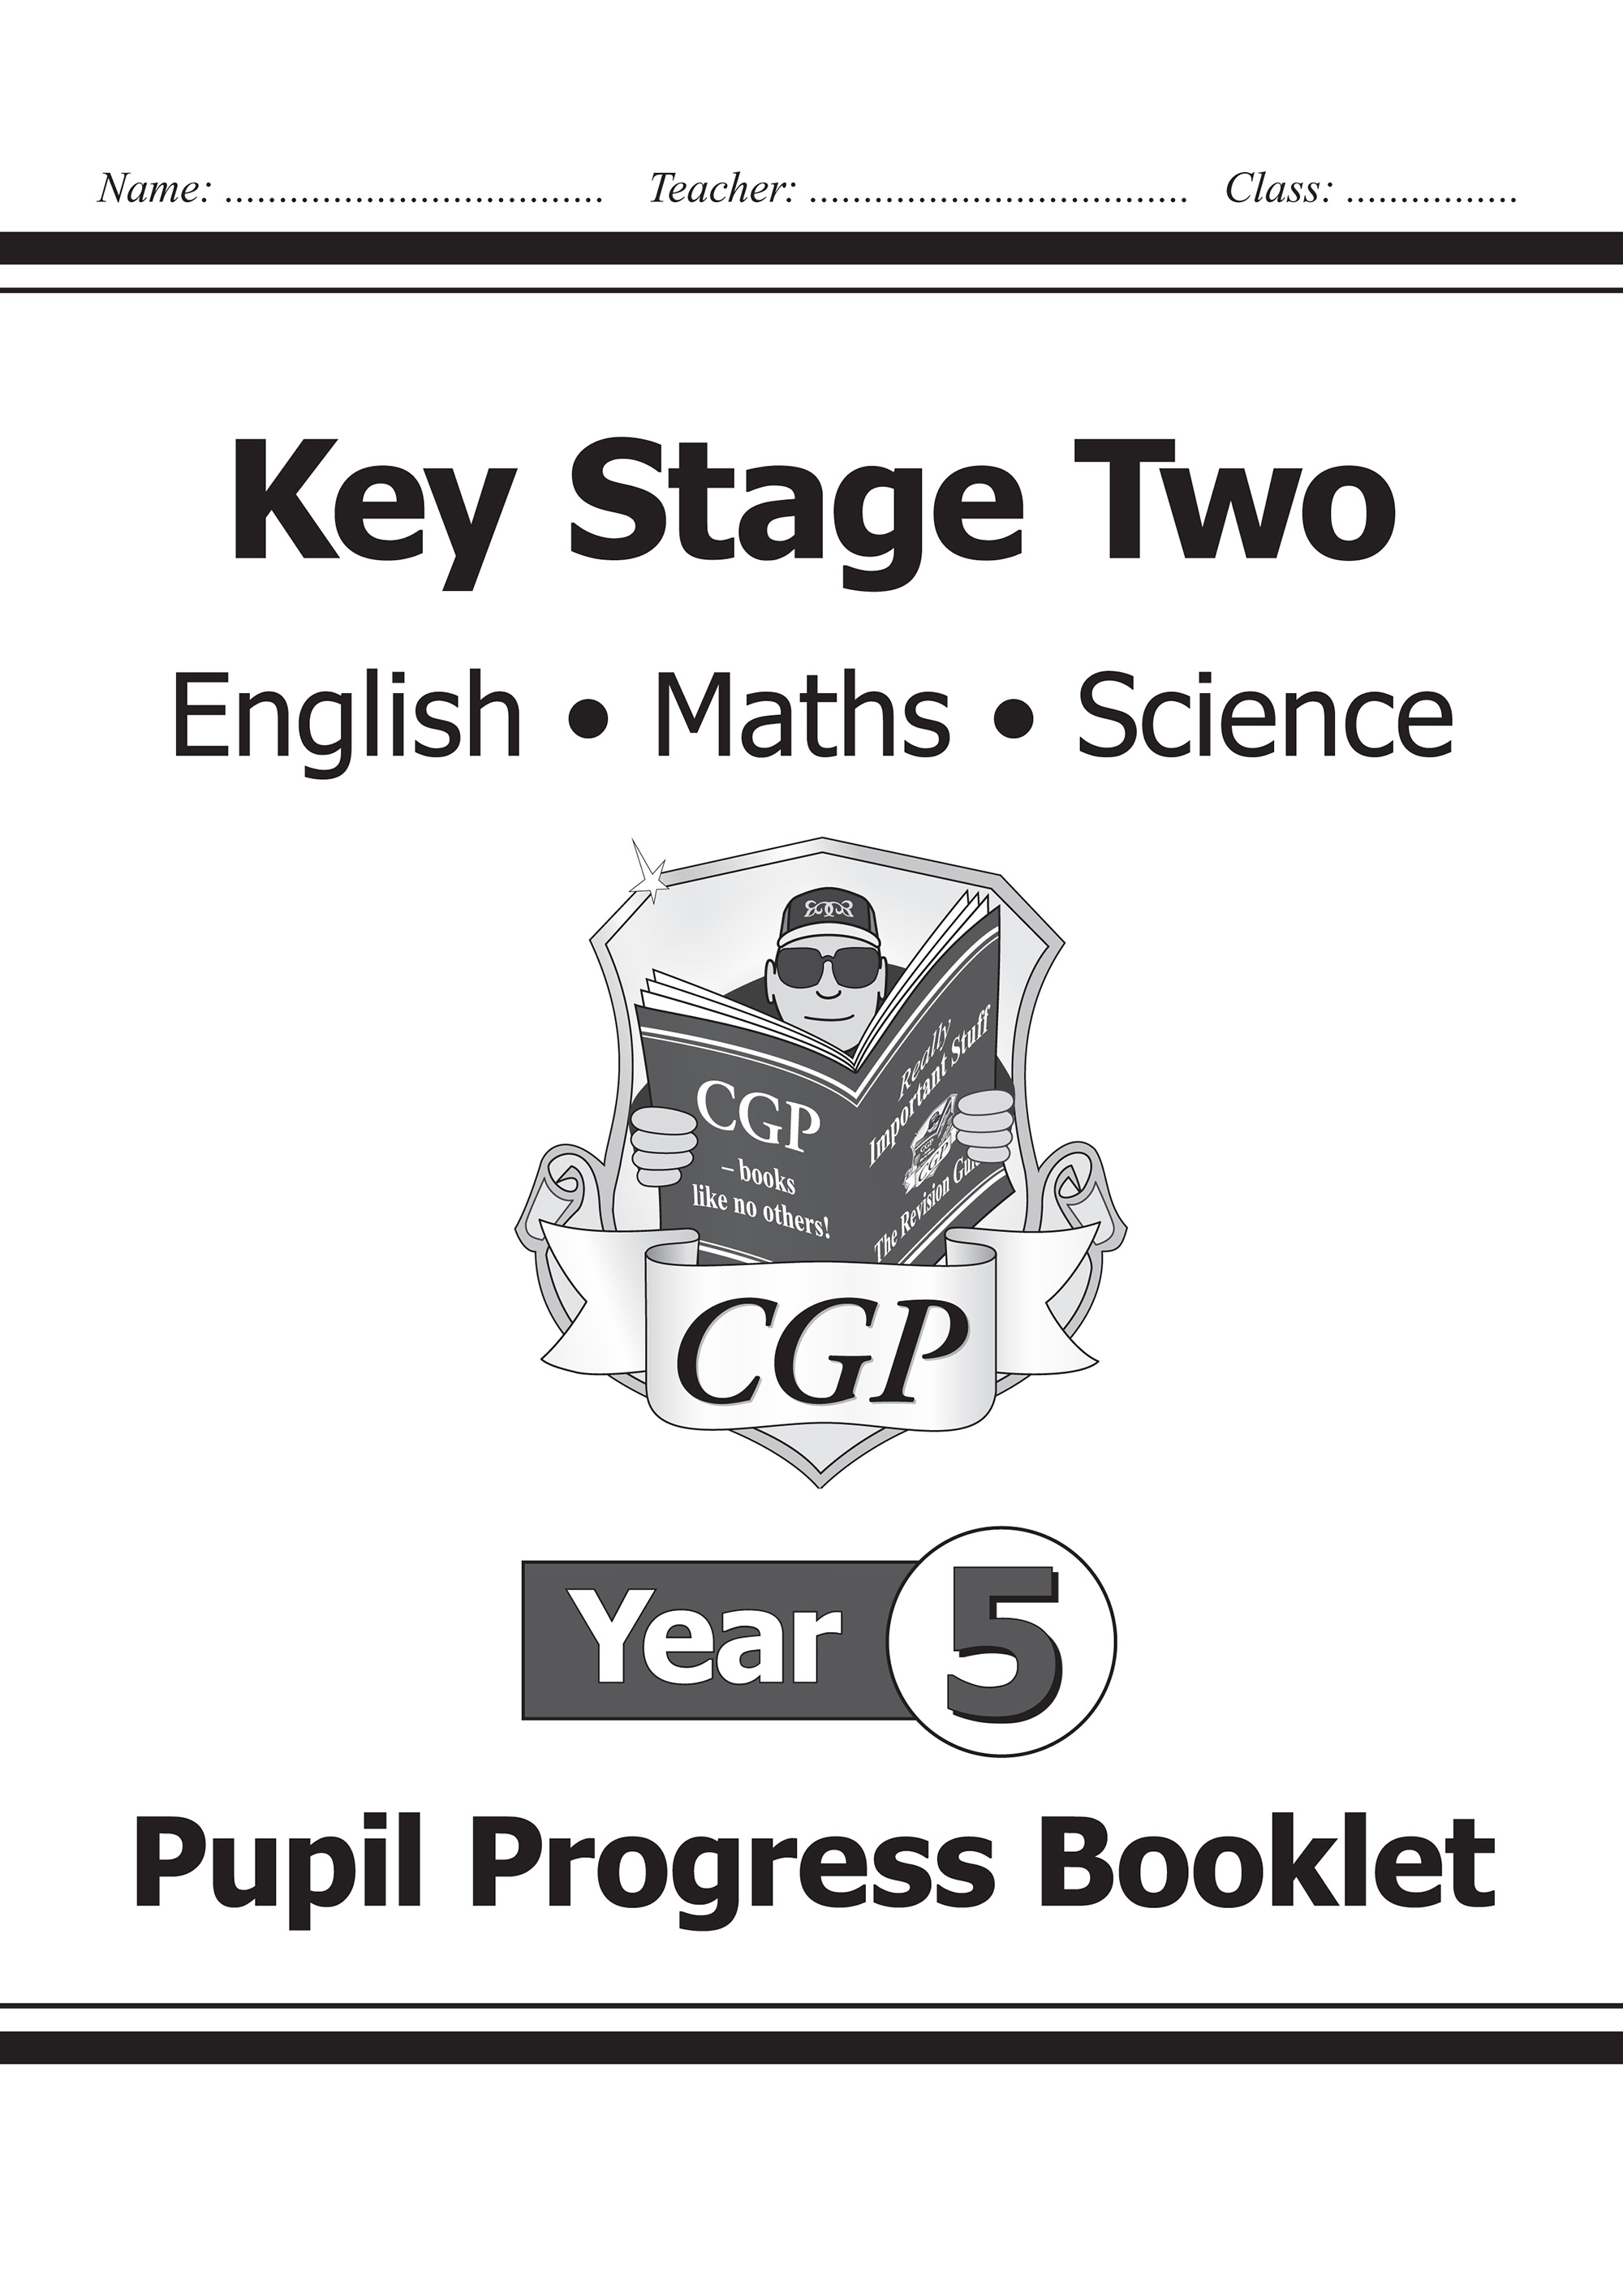 SME5P21 - KS2 Pupil Progress Booklet for English, Maths and Science - Year 5